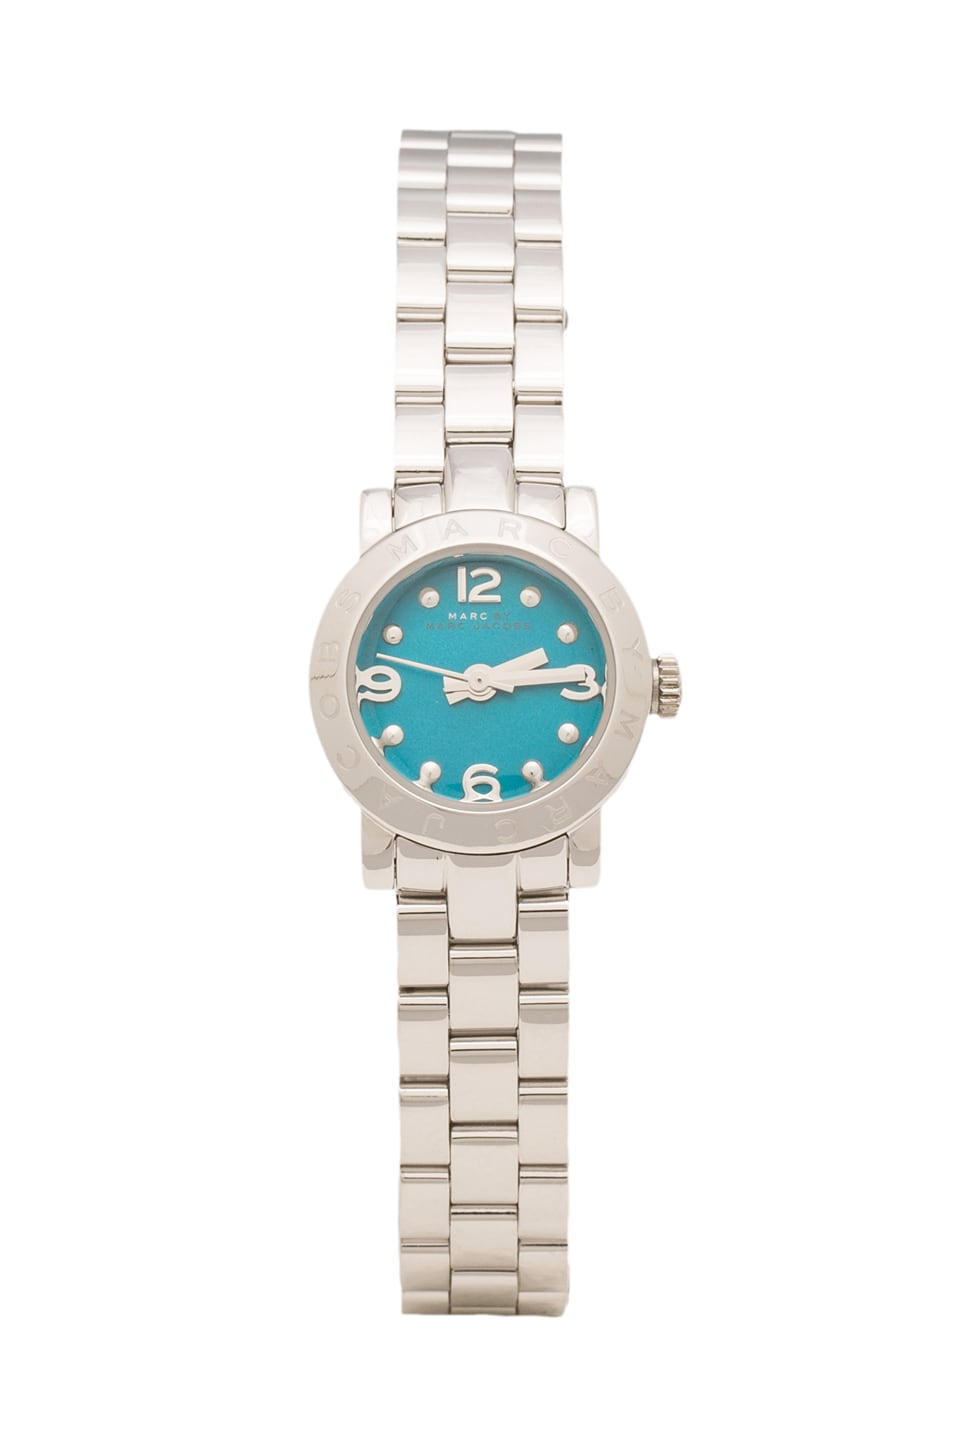 Marc by Marc Jacobs Amy Dinky Watch in Stainless Steel/Painted Teal